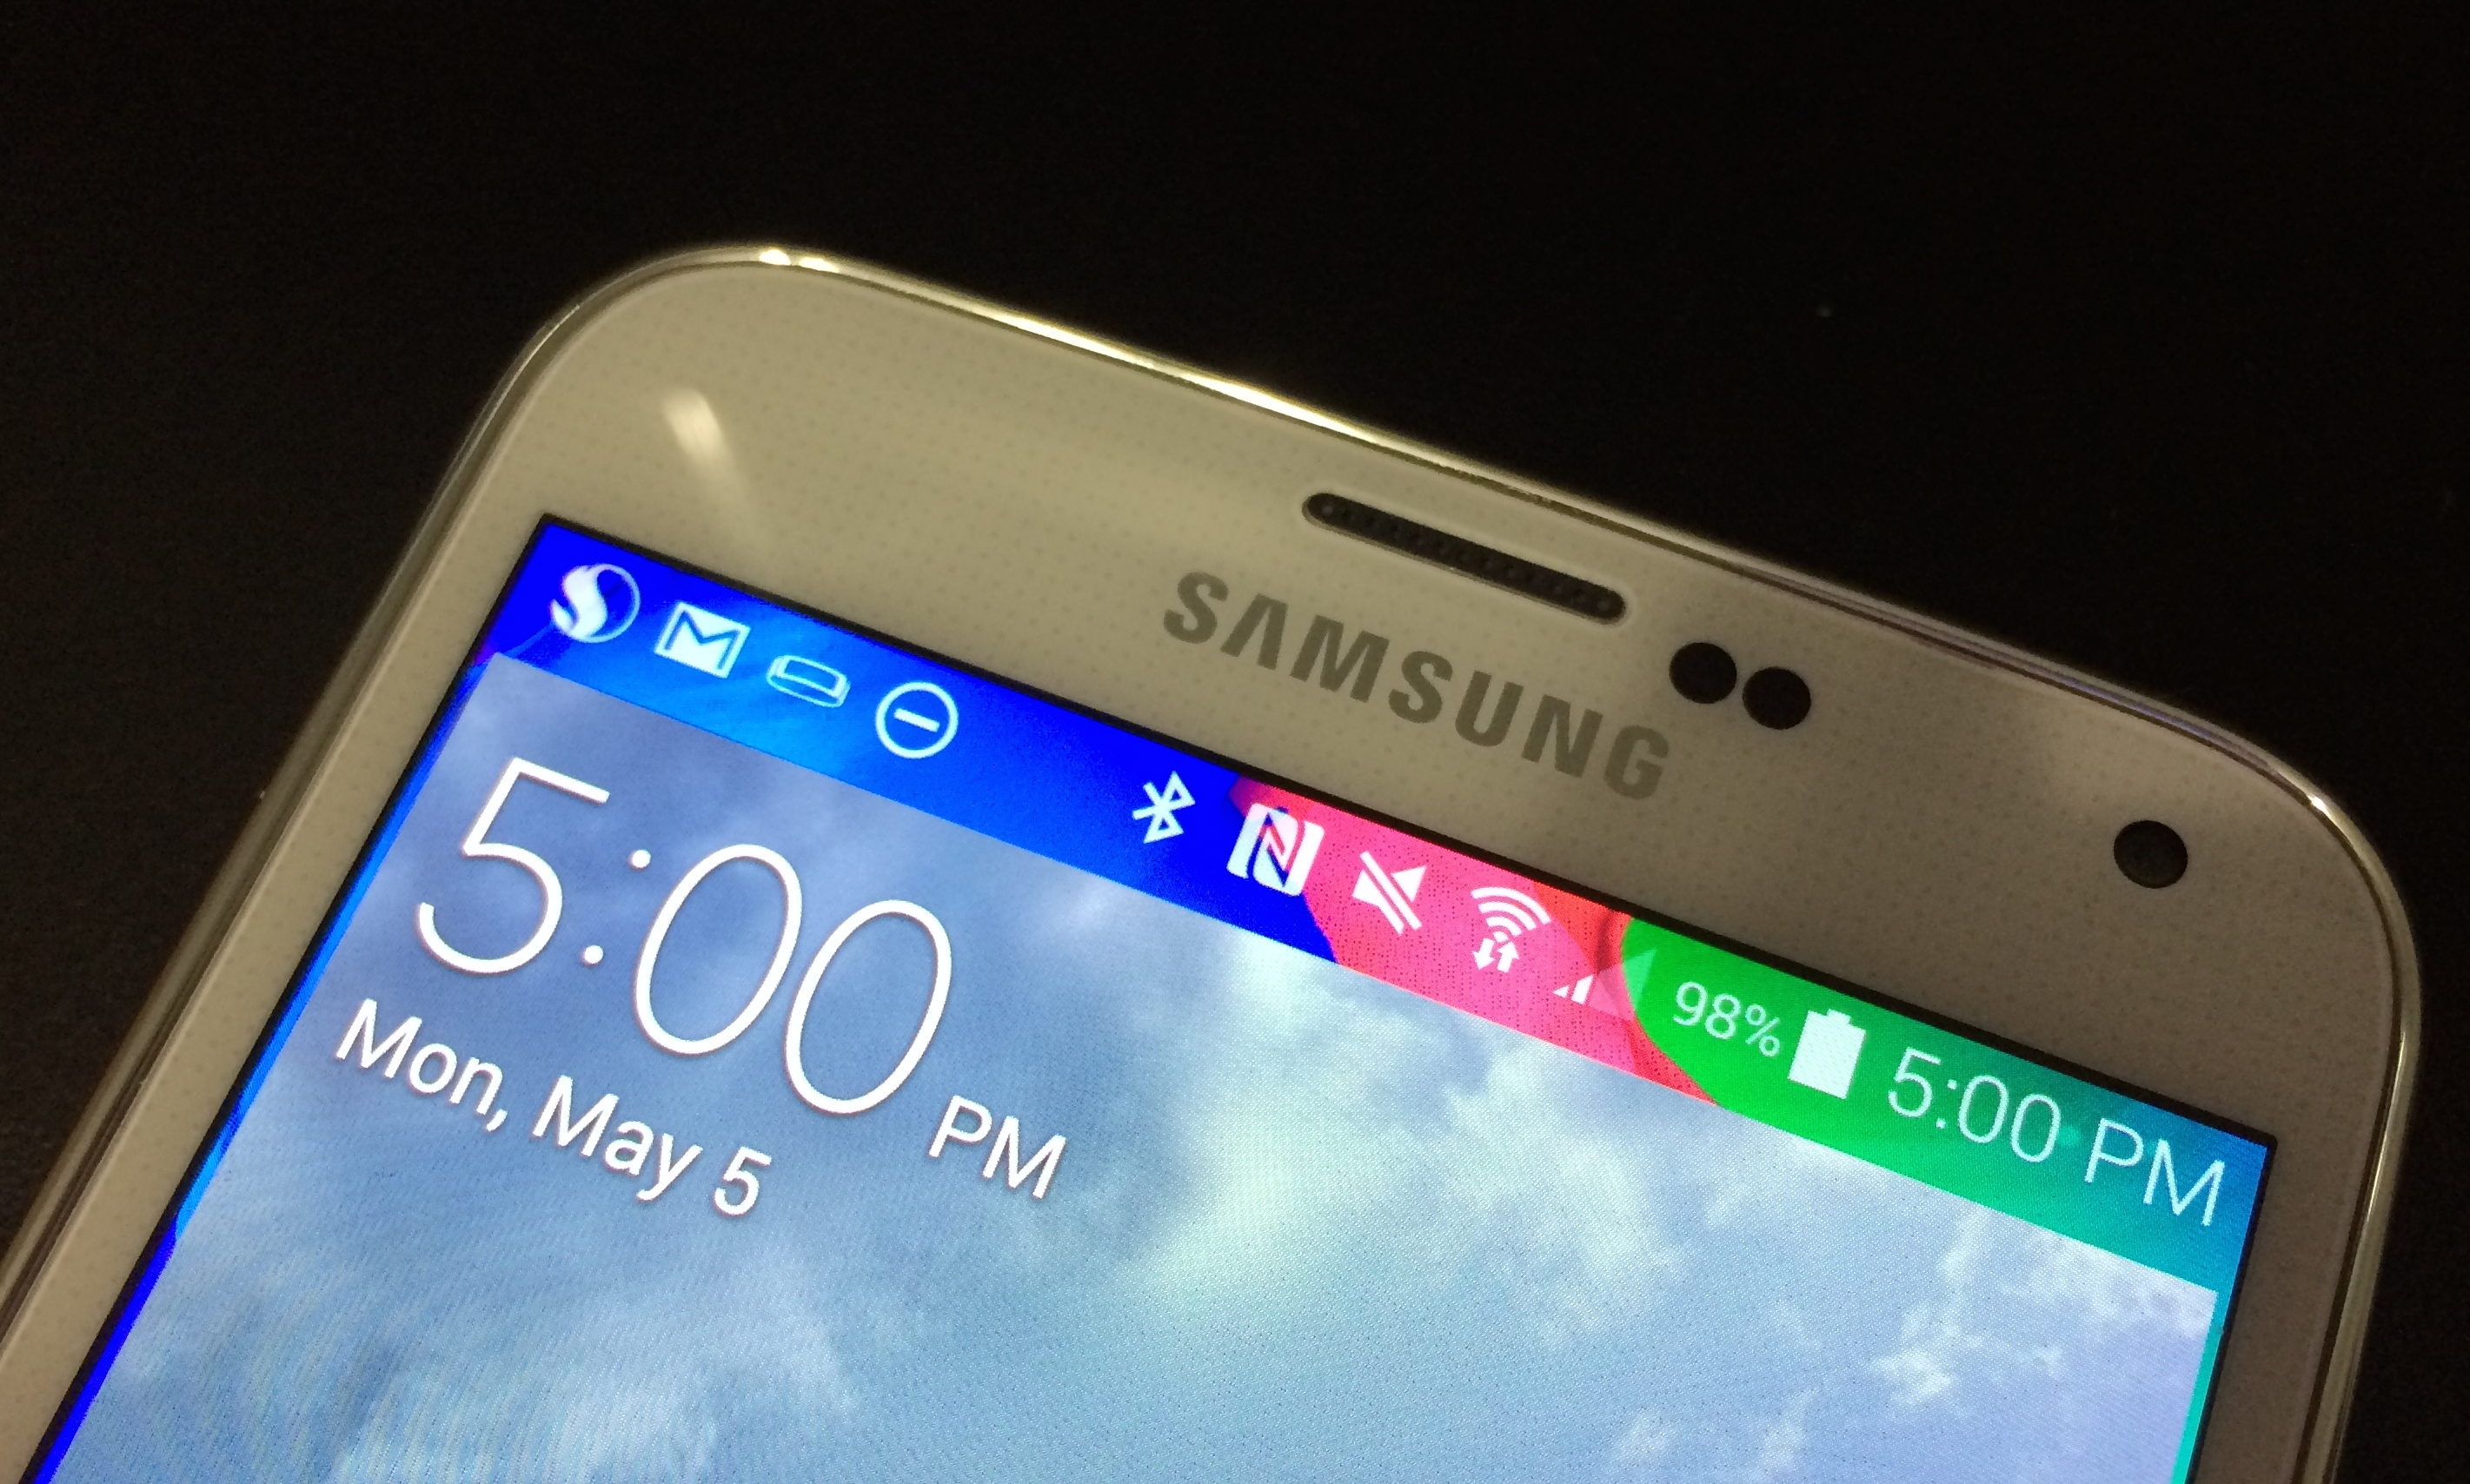 How To Use Blocking Mode On The Samsung Galaxy S5